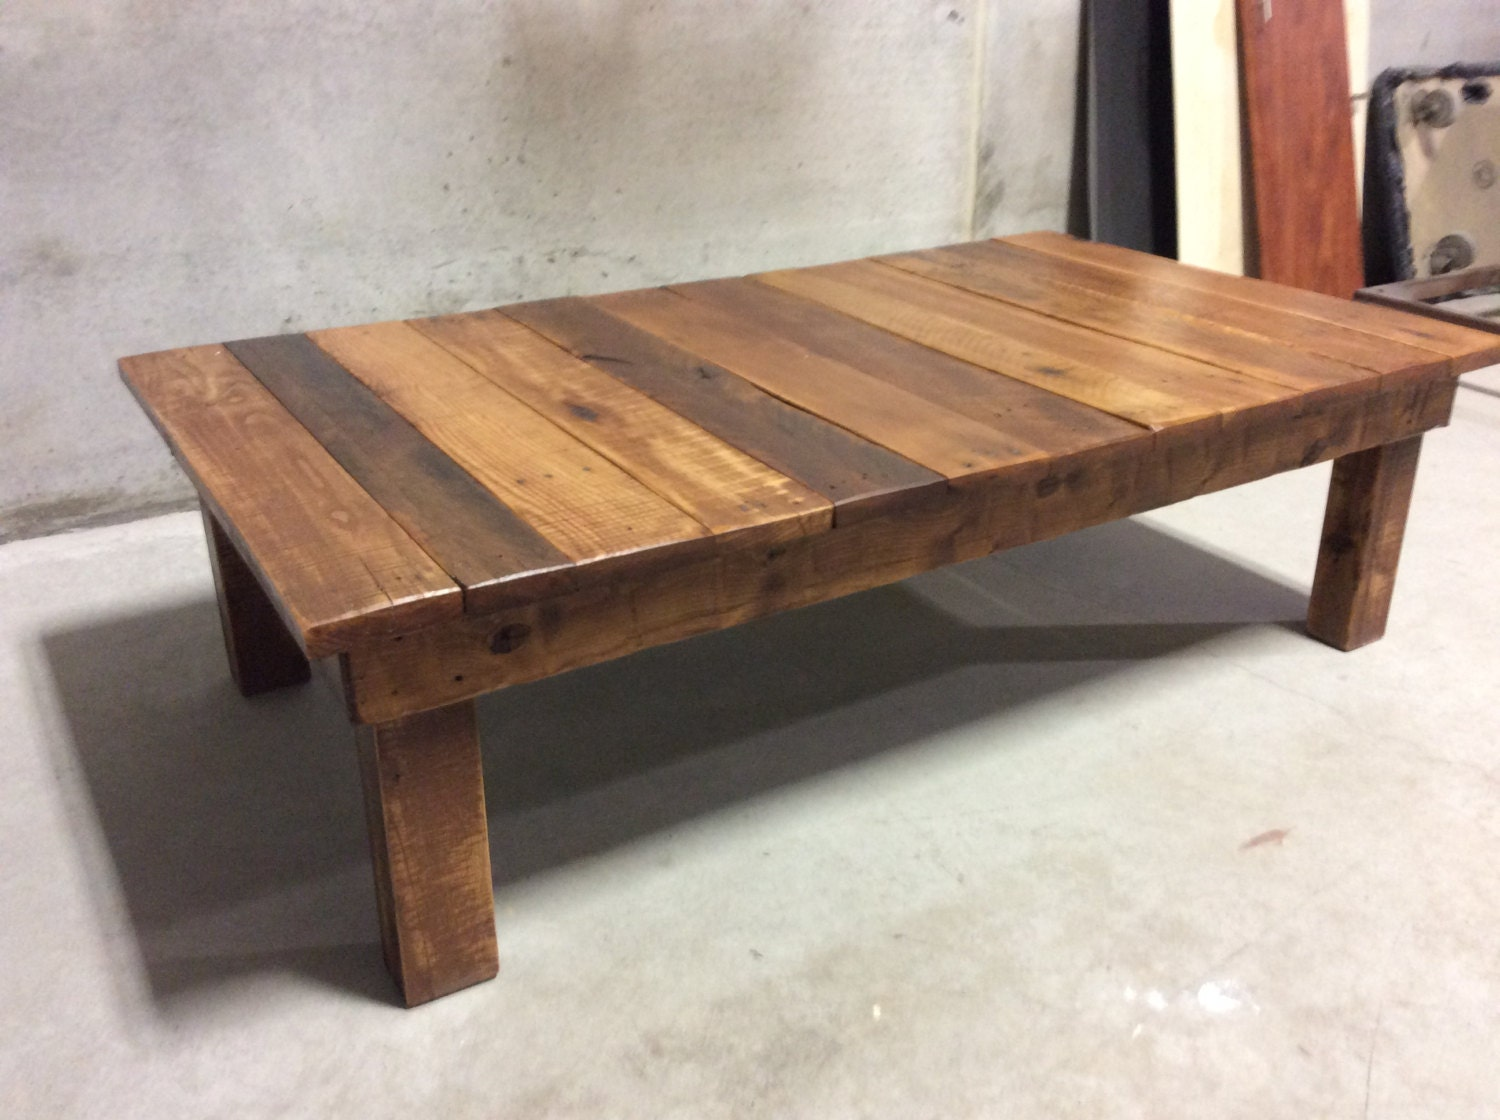 Large reclaimed wood coffee table for Reclaimed wood table designs